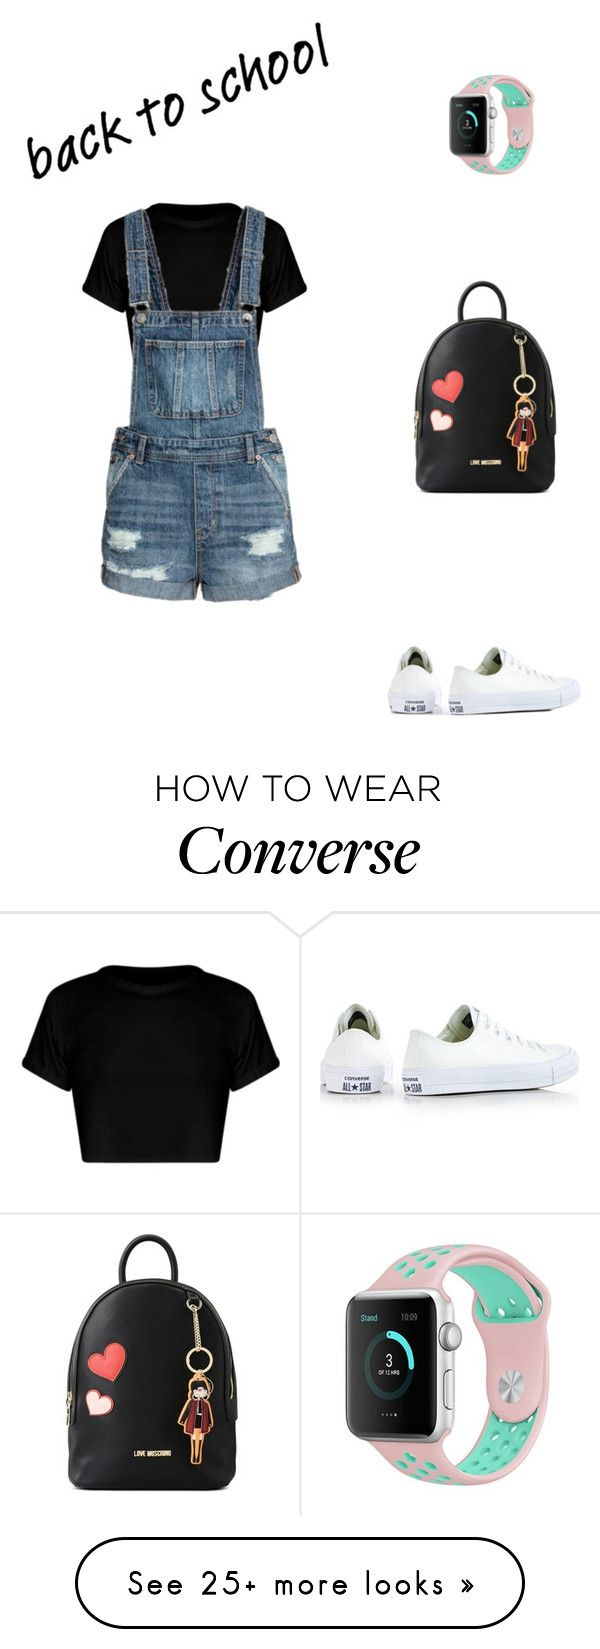 """""""back-to-school shopping"""" by explorer-14697201715 on Polyvore featuring Converse, Love Moschino and BackToSchool"""